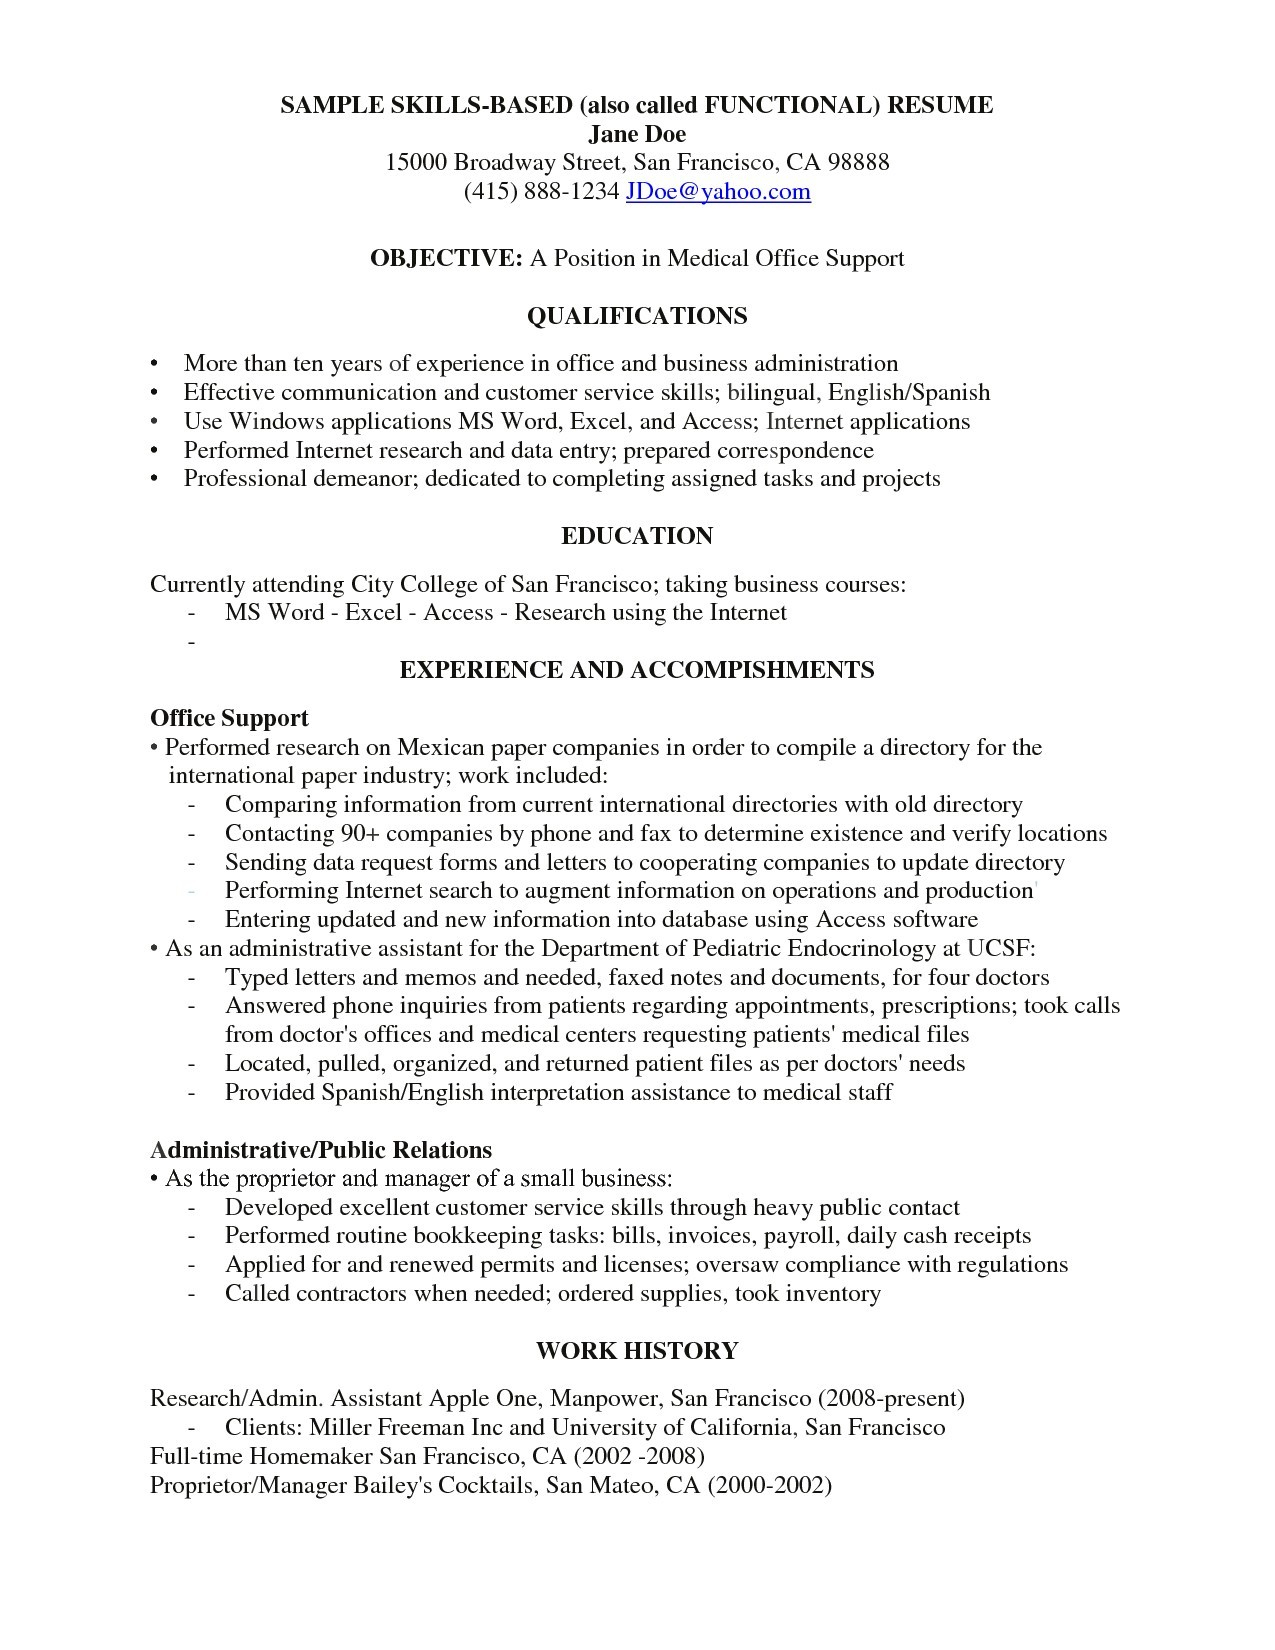 Customer Service Manager Resume Template - Customer Service Manager Resume Lovely Management Resume Template